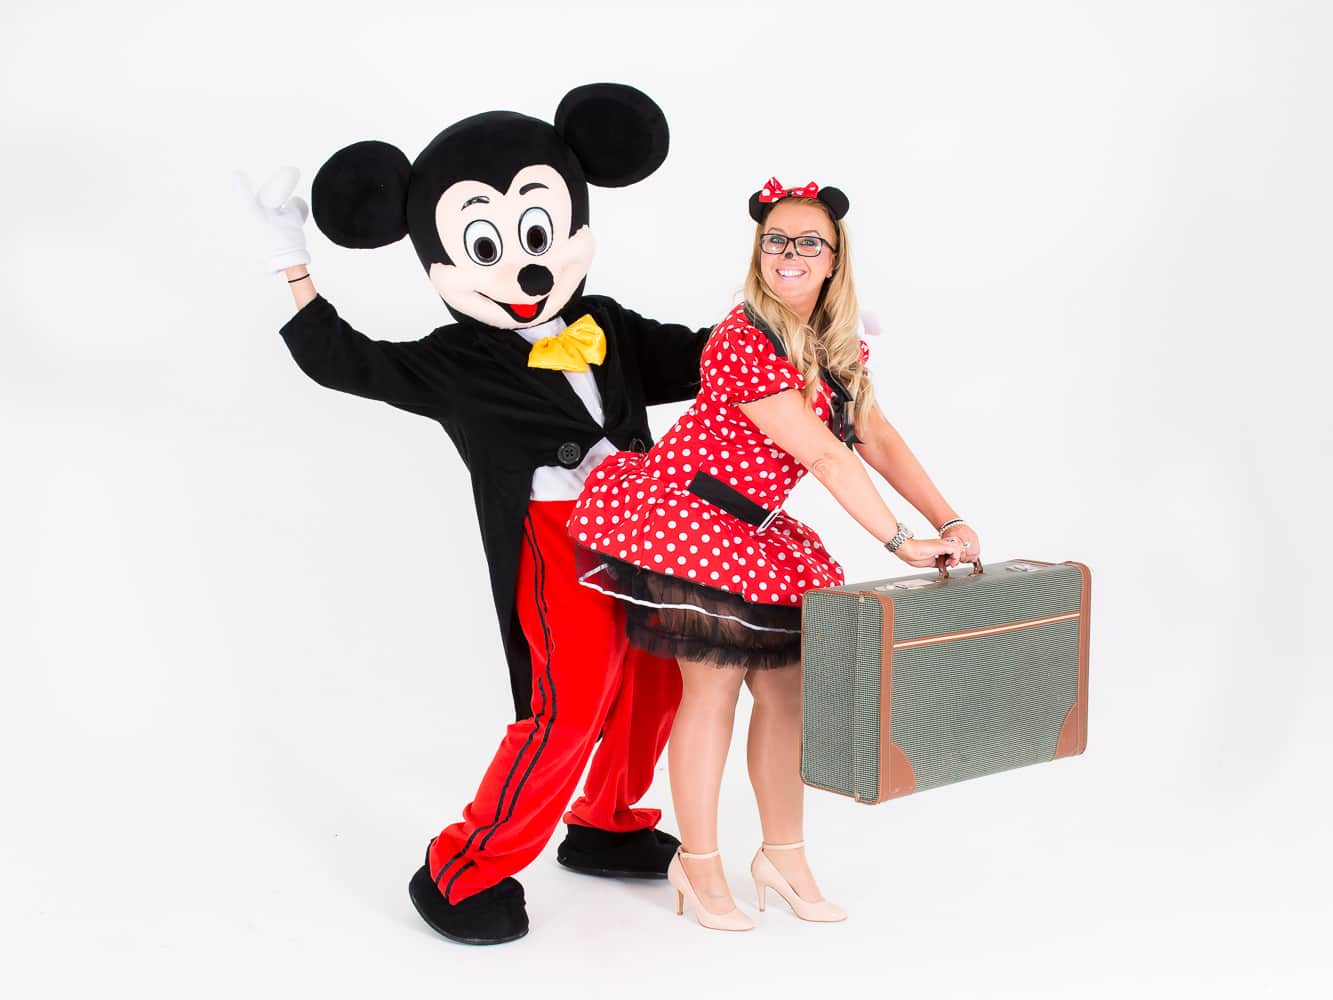 Mickey Mouse and Minnie mouse posing for the camera whilst Minnie holds a suitcase